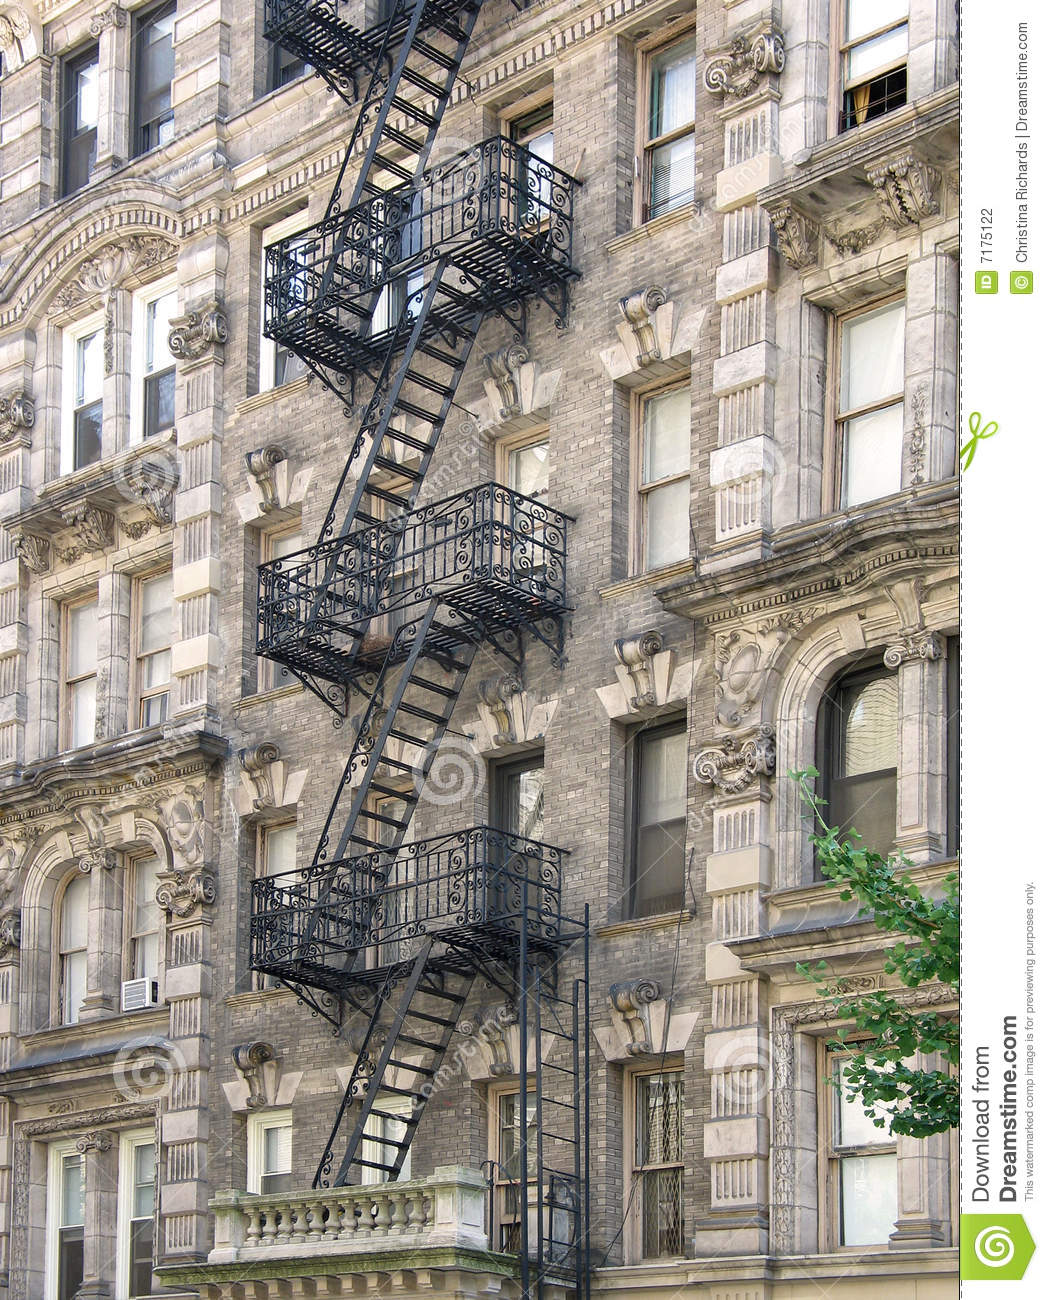 Harlem New York Apartments: Harlem Apartment Building Stock Photo. Image Of City